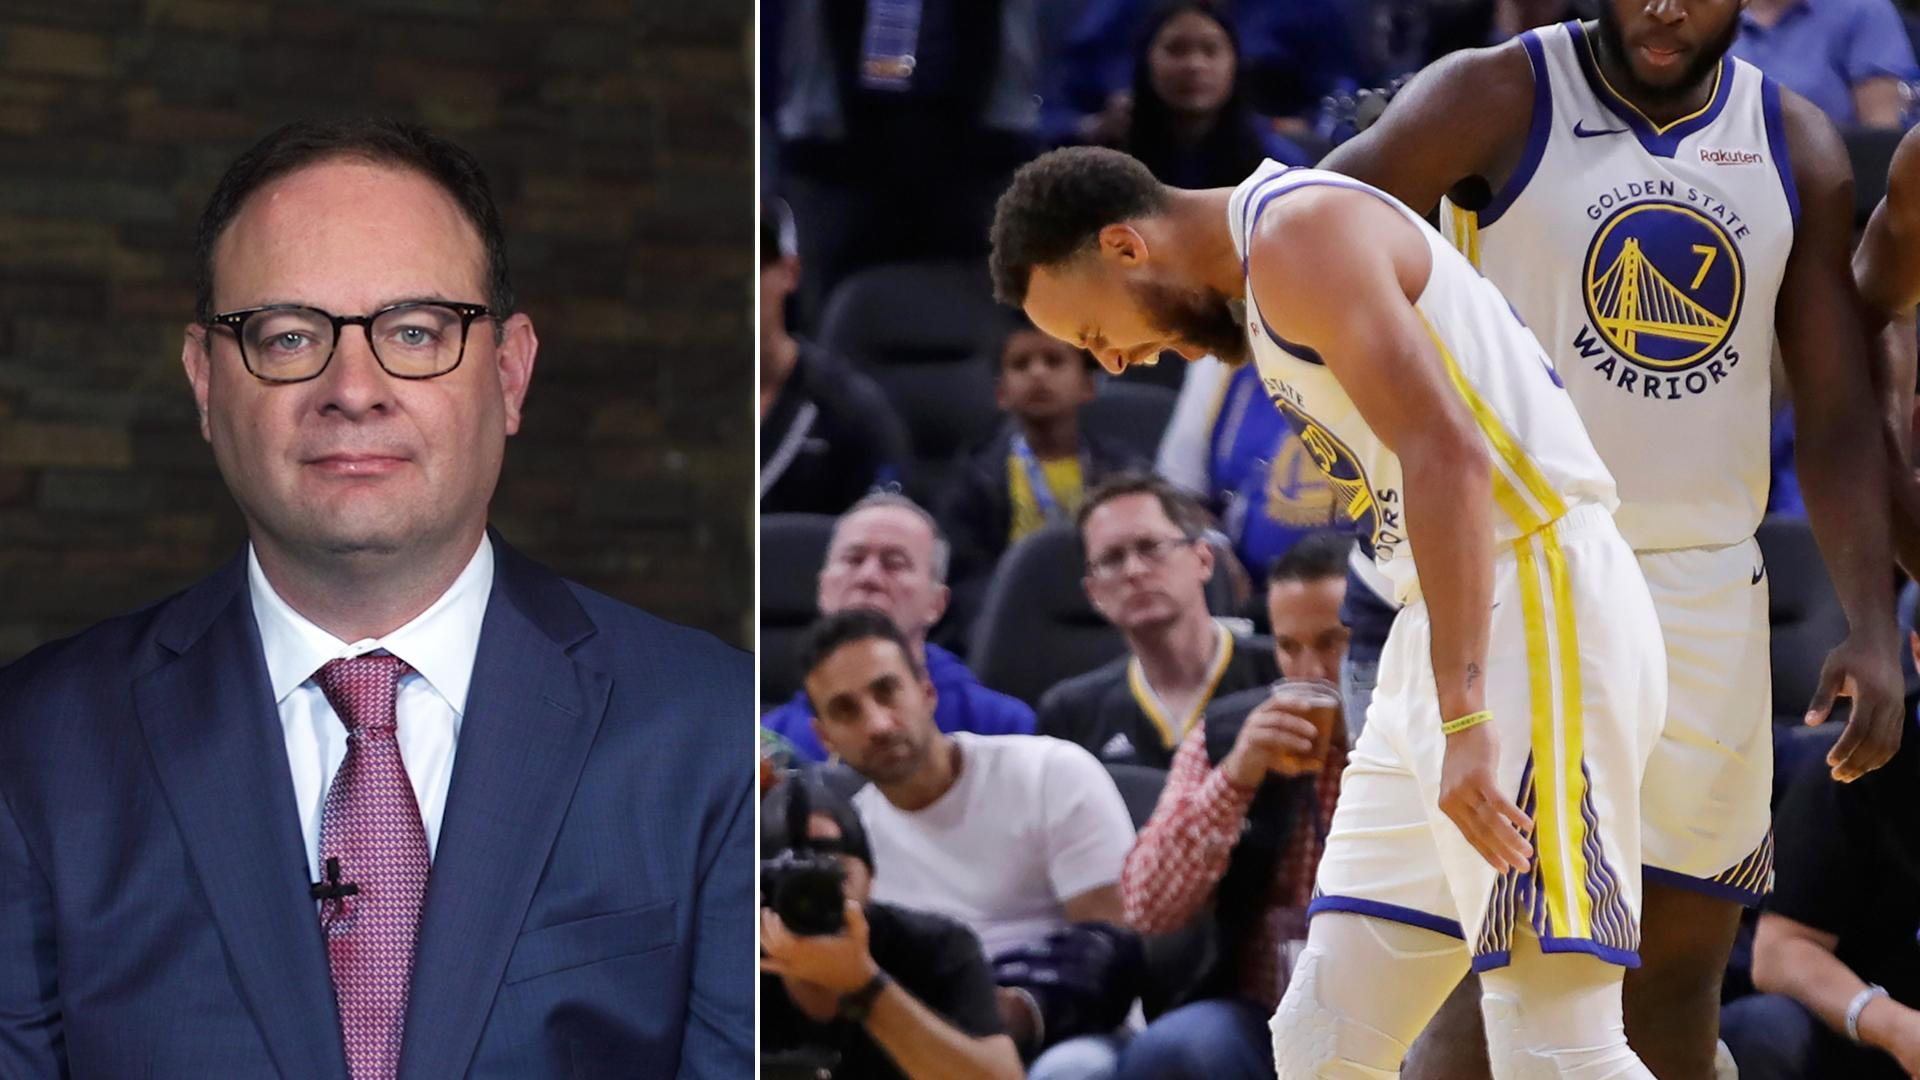 Woj: Curry injury could propel Warriors into lottery